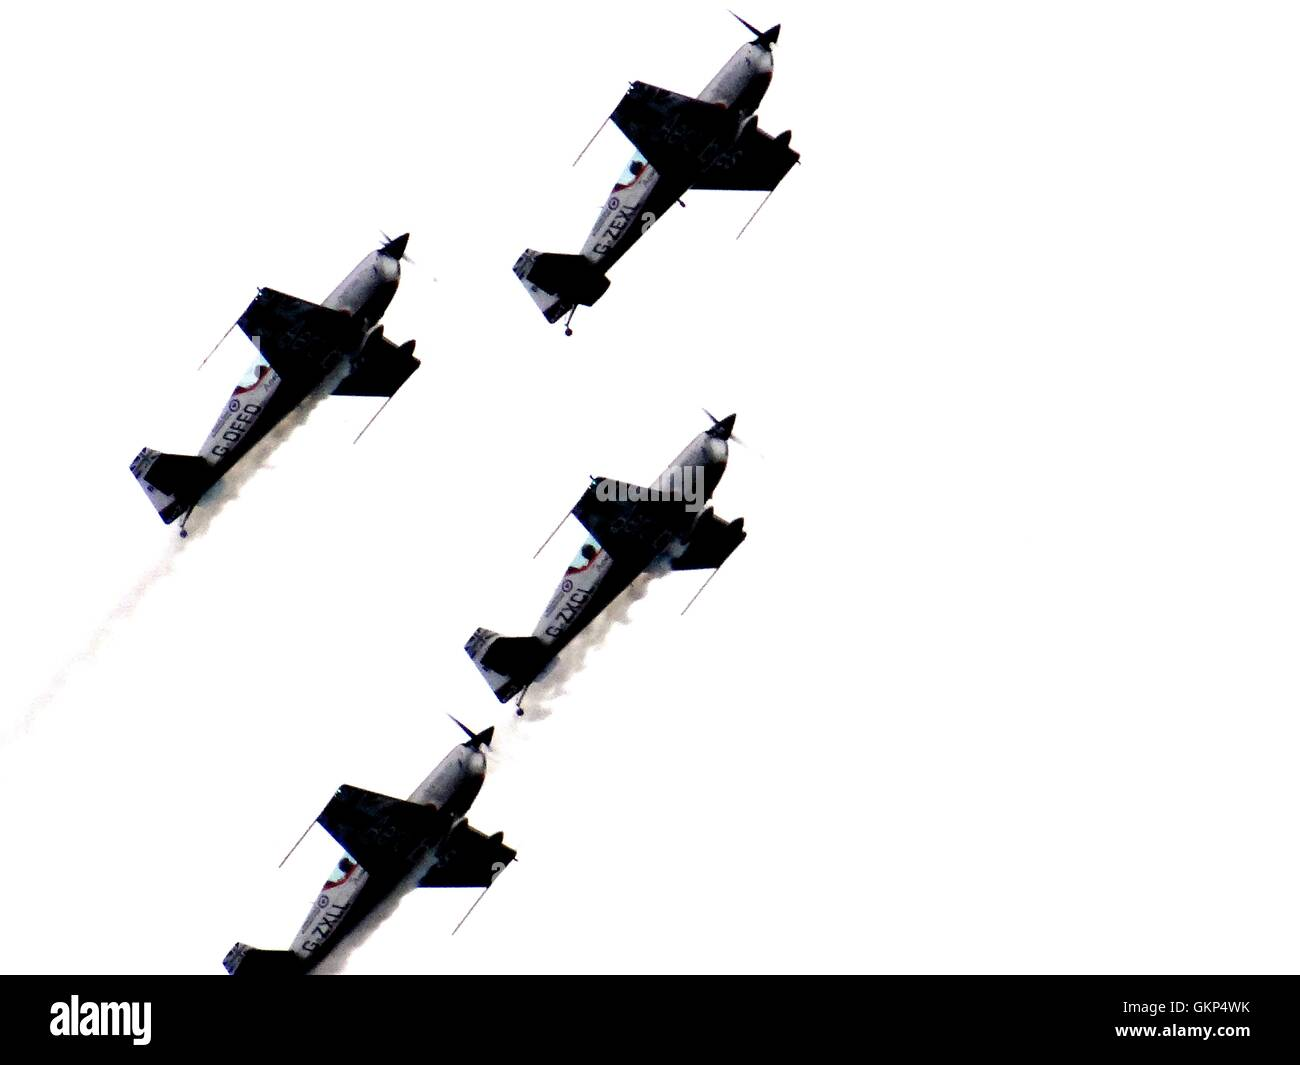 Bournemouth, UK. 21st Aug, 2016. The Blades on display at Bournemouth Air Festival on 21 August 2016, Bournemouth, - Stock Image